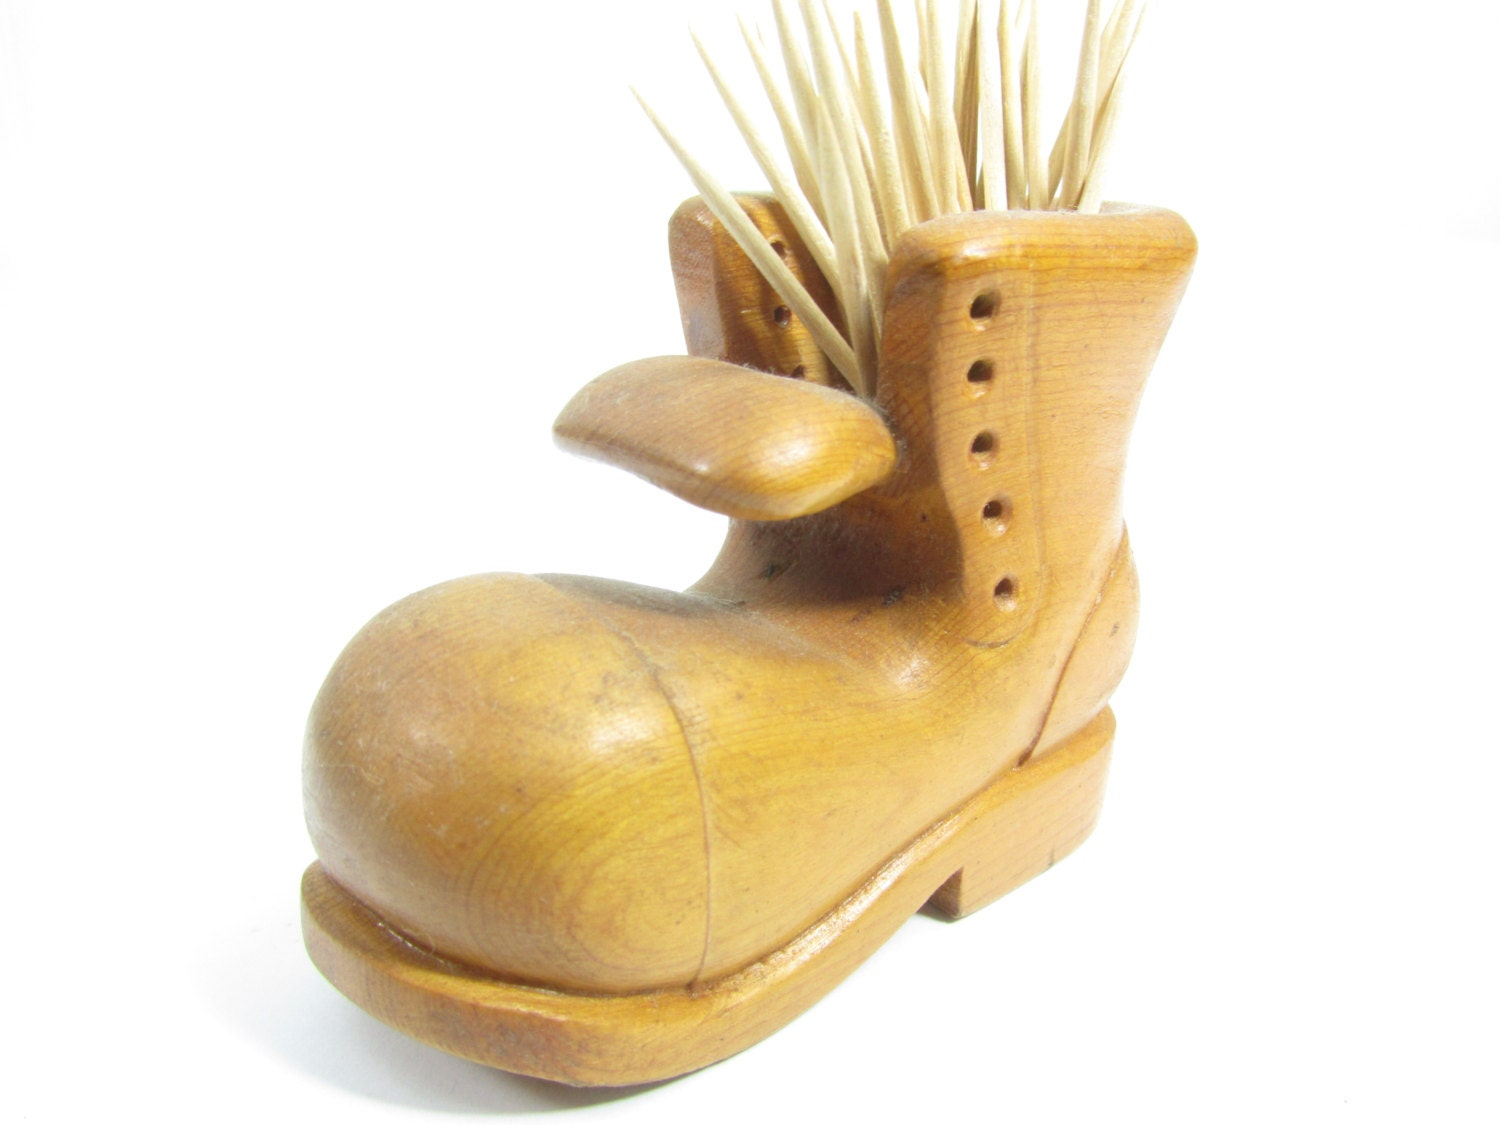 Toothpick holder boot wooden bootwood shoeprimitive wood - Wooden pocket toothpick holder ...